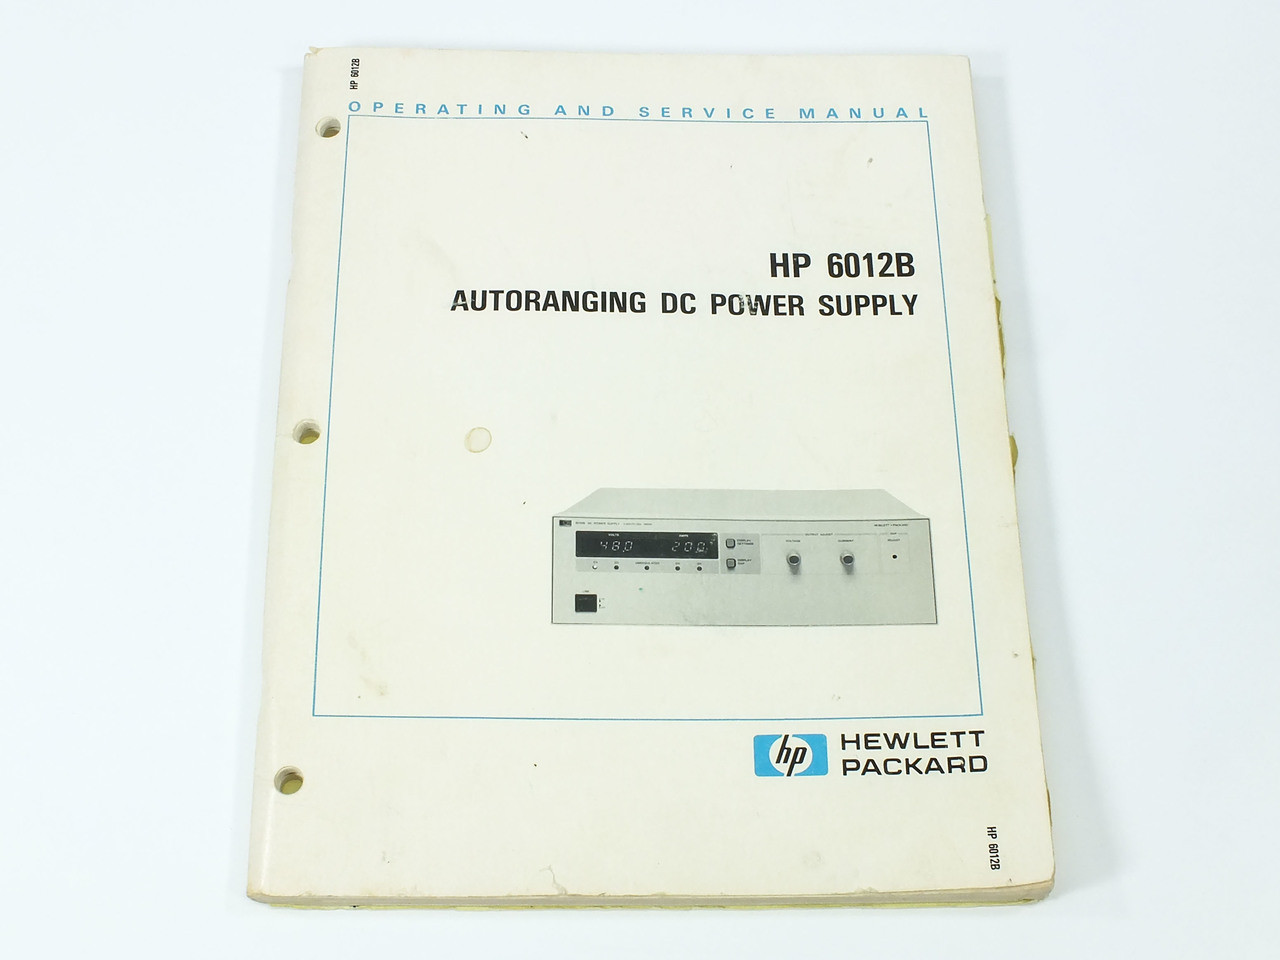 hp 6012b autoranging dc power supply operating and service manual rh recycledgoods com HP Laptop Power Supply Replacement HP Desktop Power Supply Upgrade